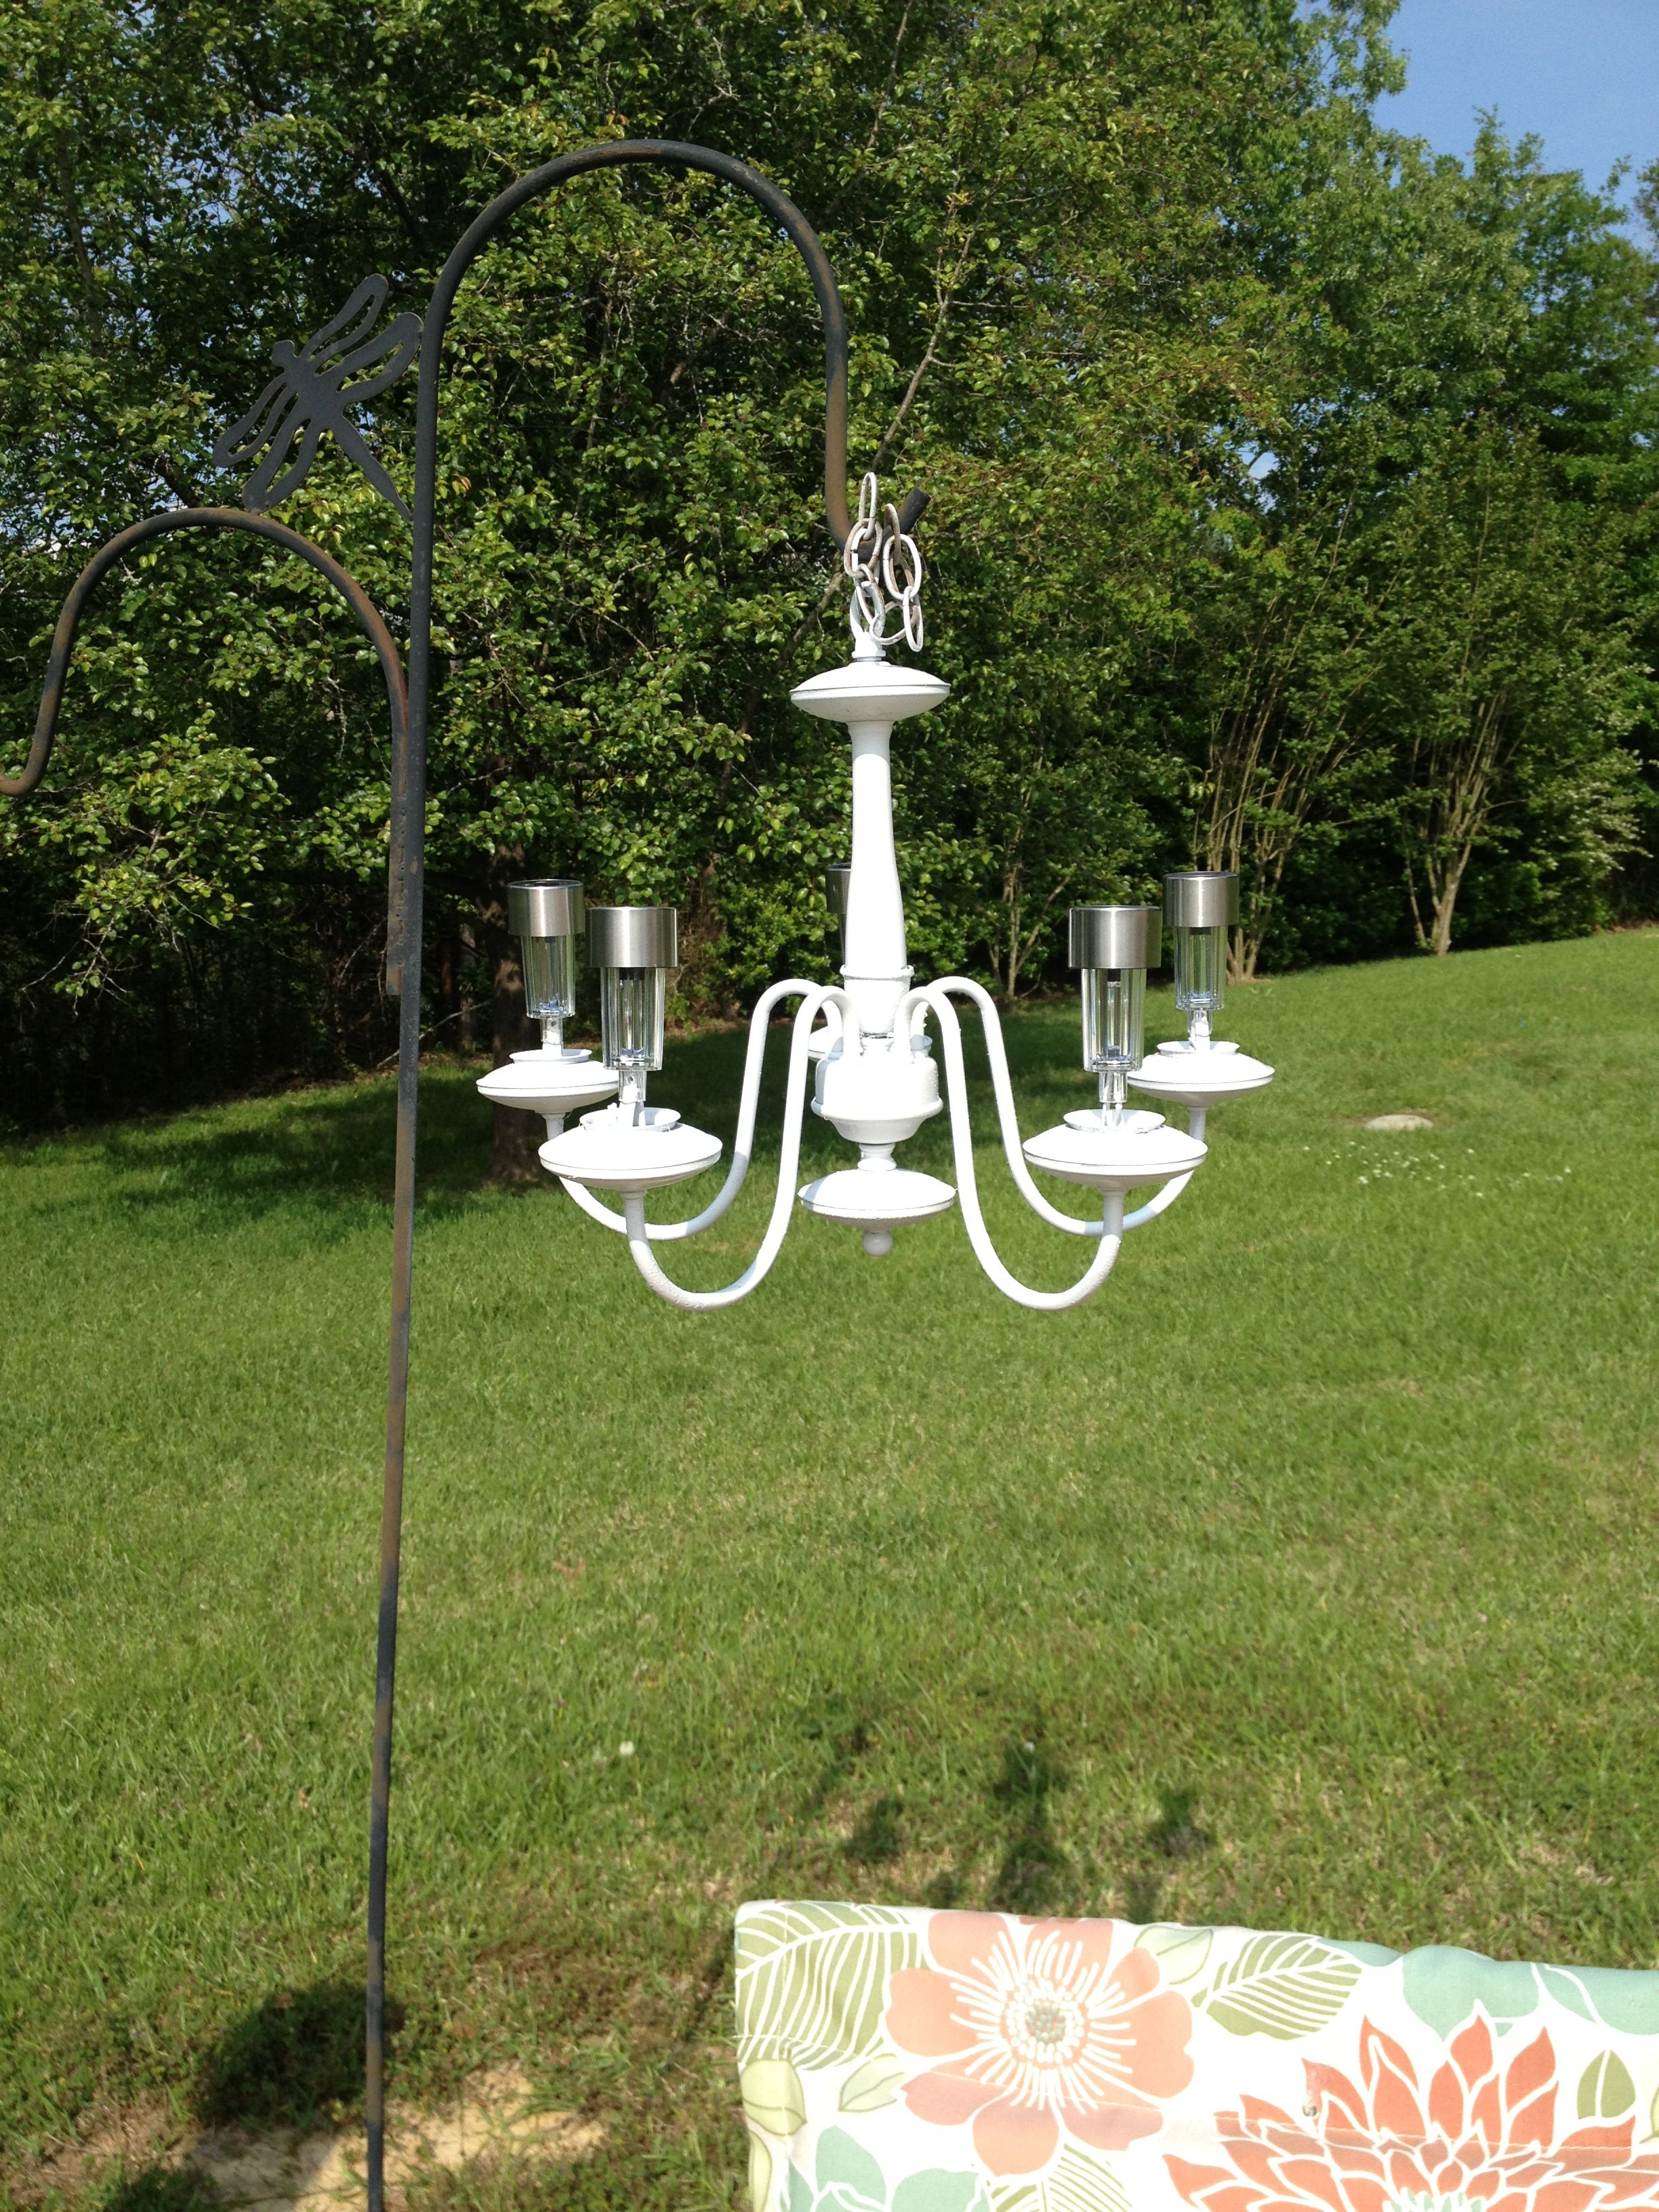 Spray paint an old chandelier and add solar lights to use outdoors